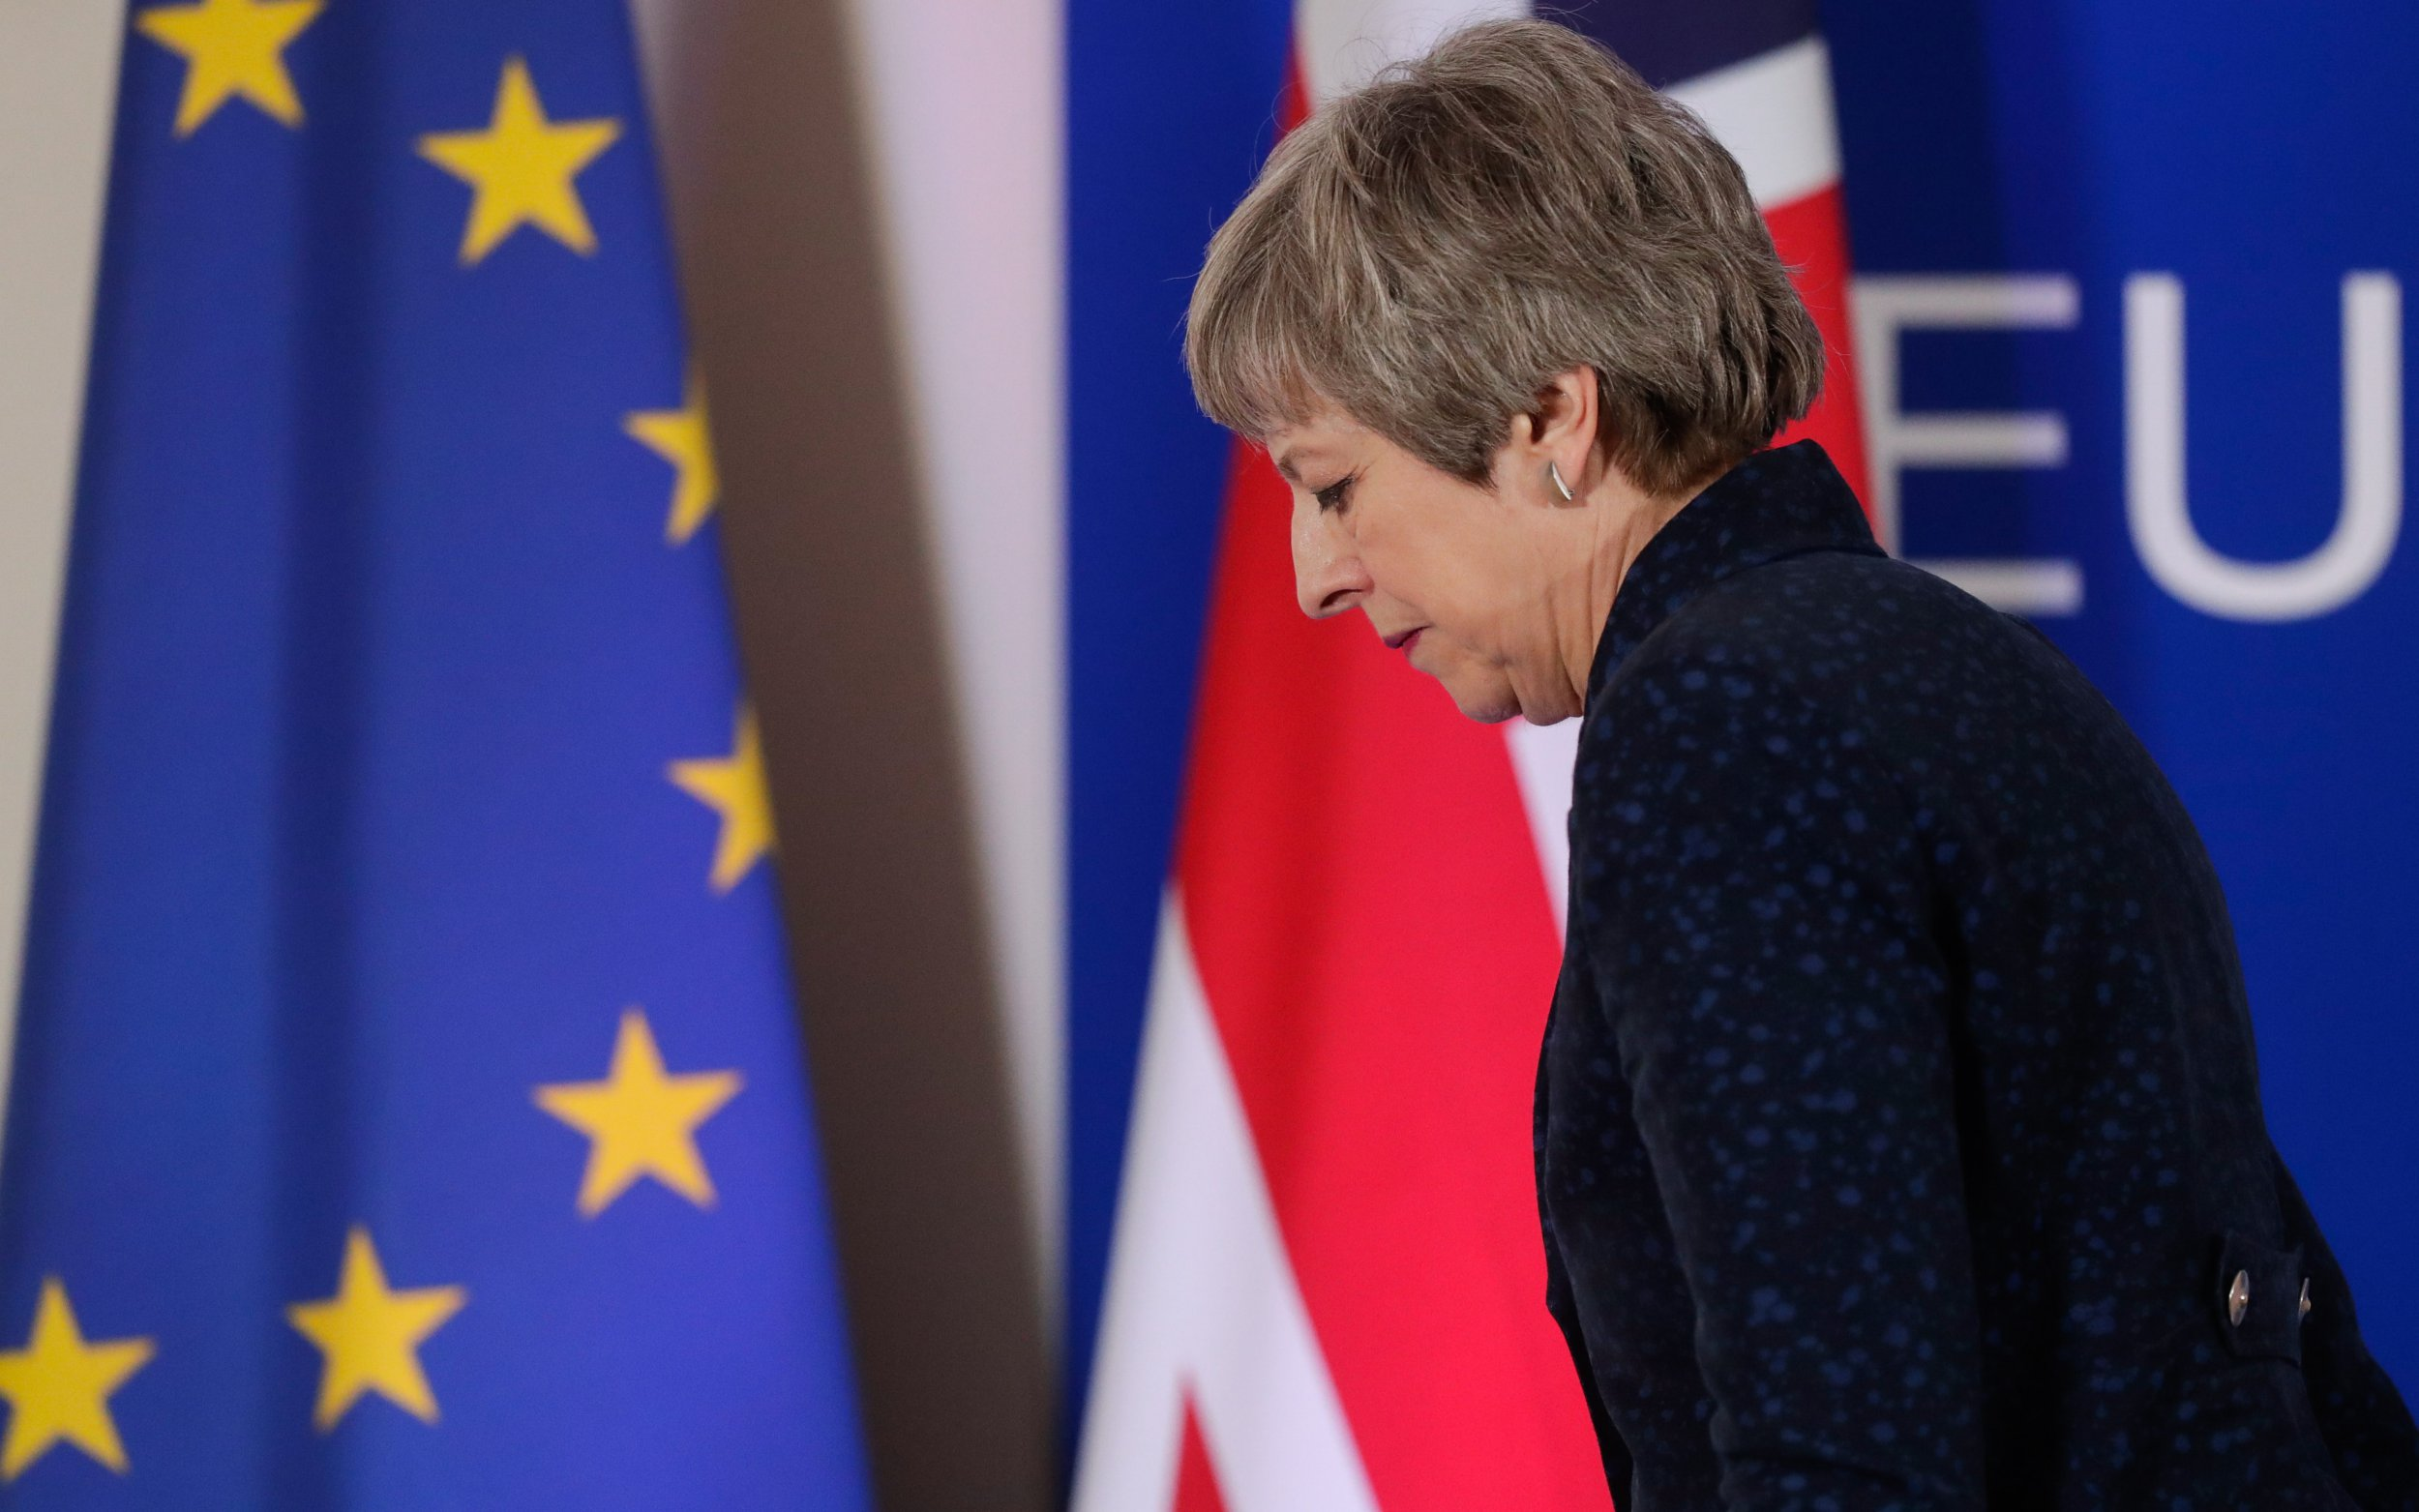 epa07459698 (FILE) - Britain's Prime Minister Theresa May leaves after a press briefing at the end of article 50 session at the European Council in Brussels, Belgium, 21 March 2019 (reissued 24 March 2019). According to reports in some British Sunday newspapers and online media, the Prime Minister could be replaced by an interim leader who would lead the UK through Brexit. The reports say that cabinet ministers plan to oust May as prime minister and replace her with a 'caretaker leader' until a proper leadership competition takes place later in the year. EPA/STEPHANIE LECOCQ